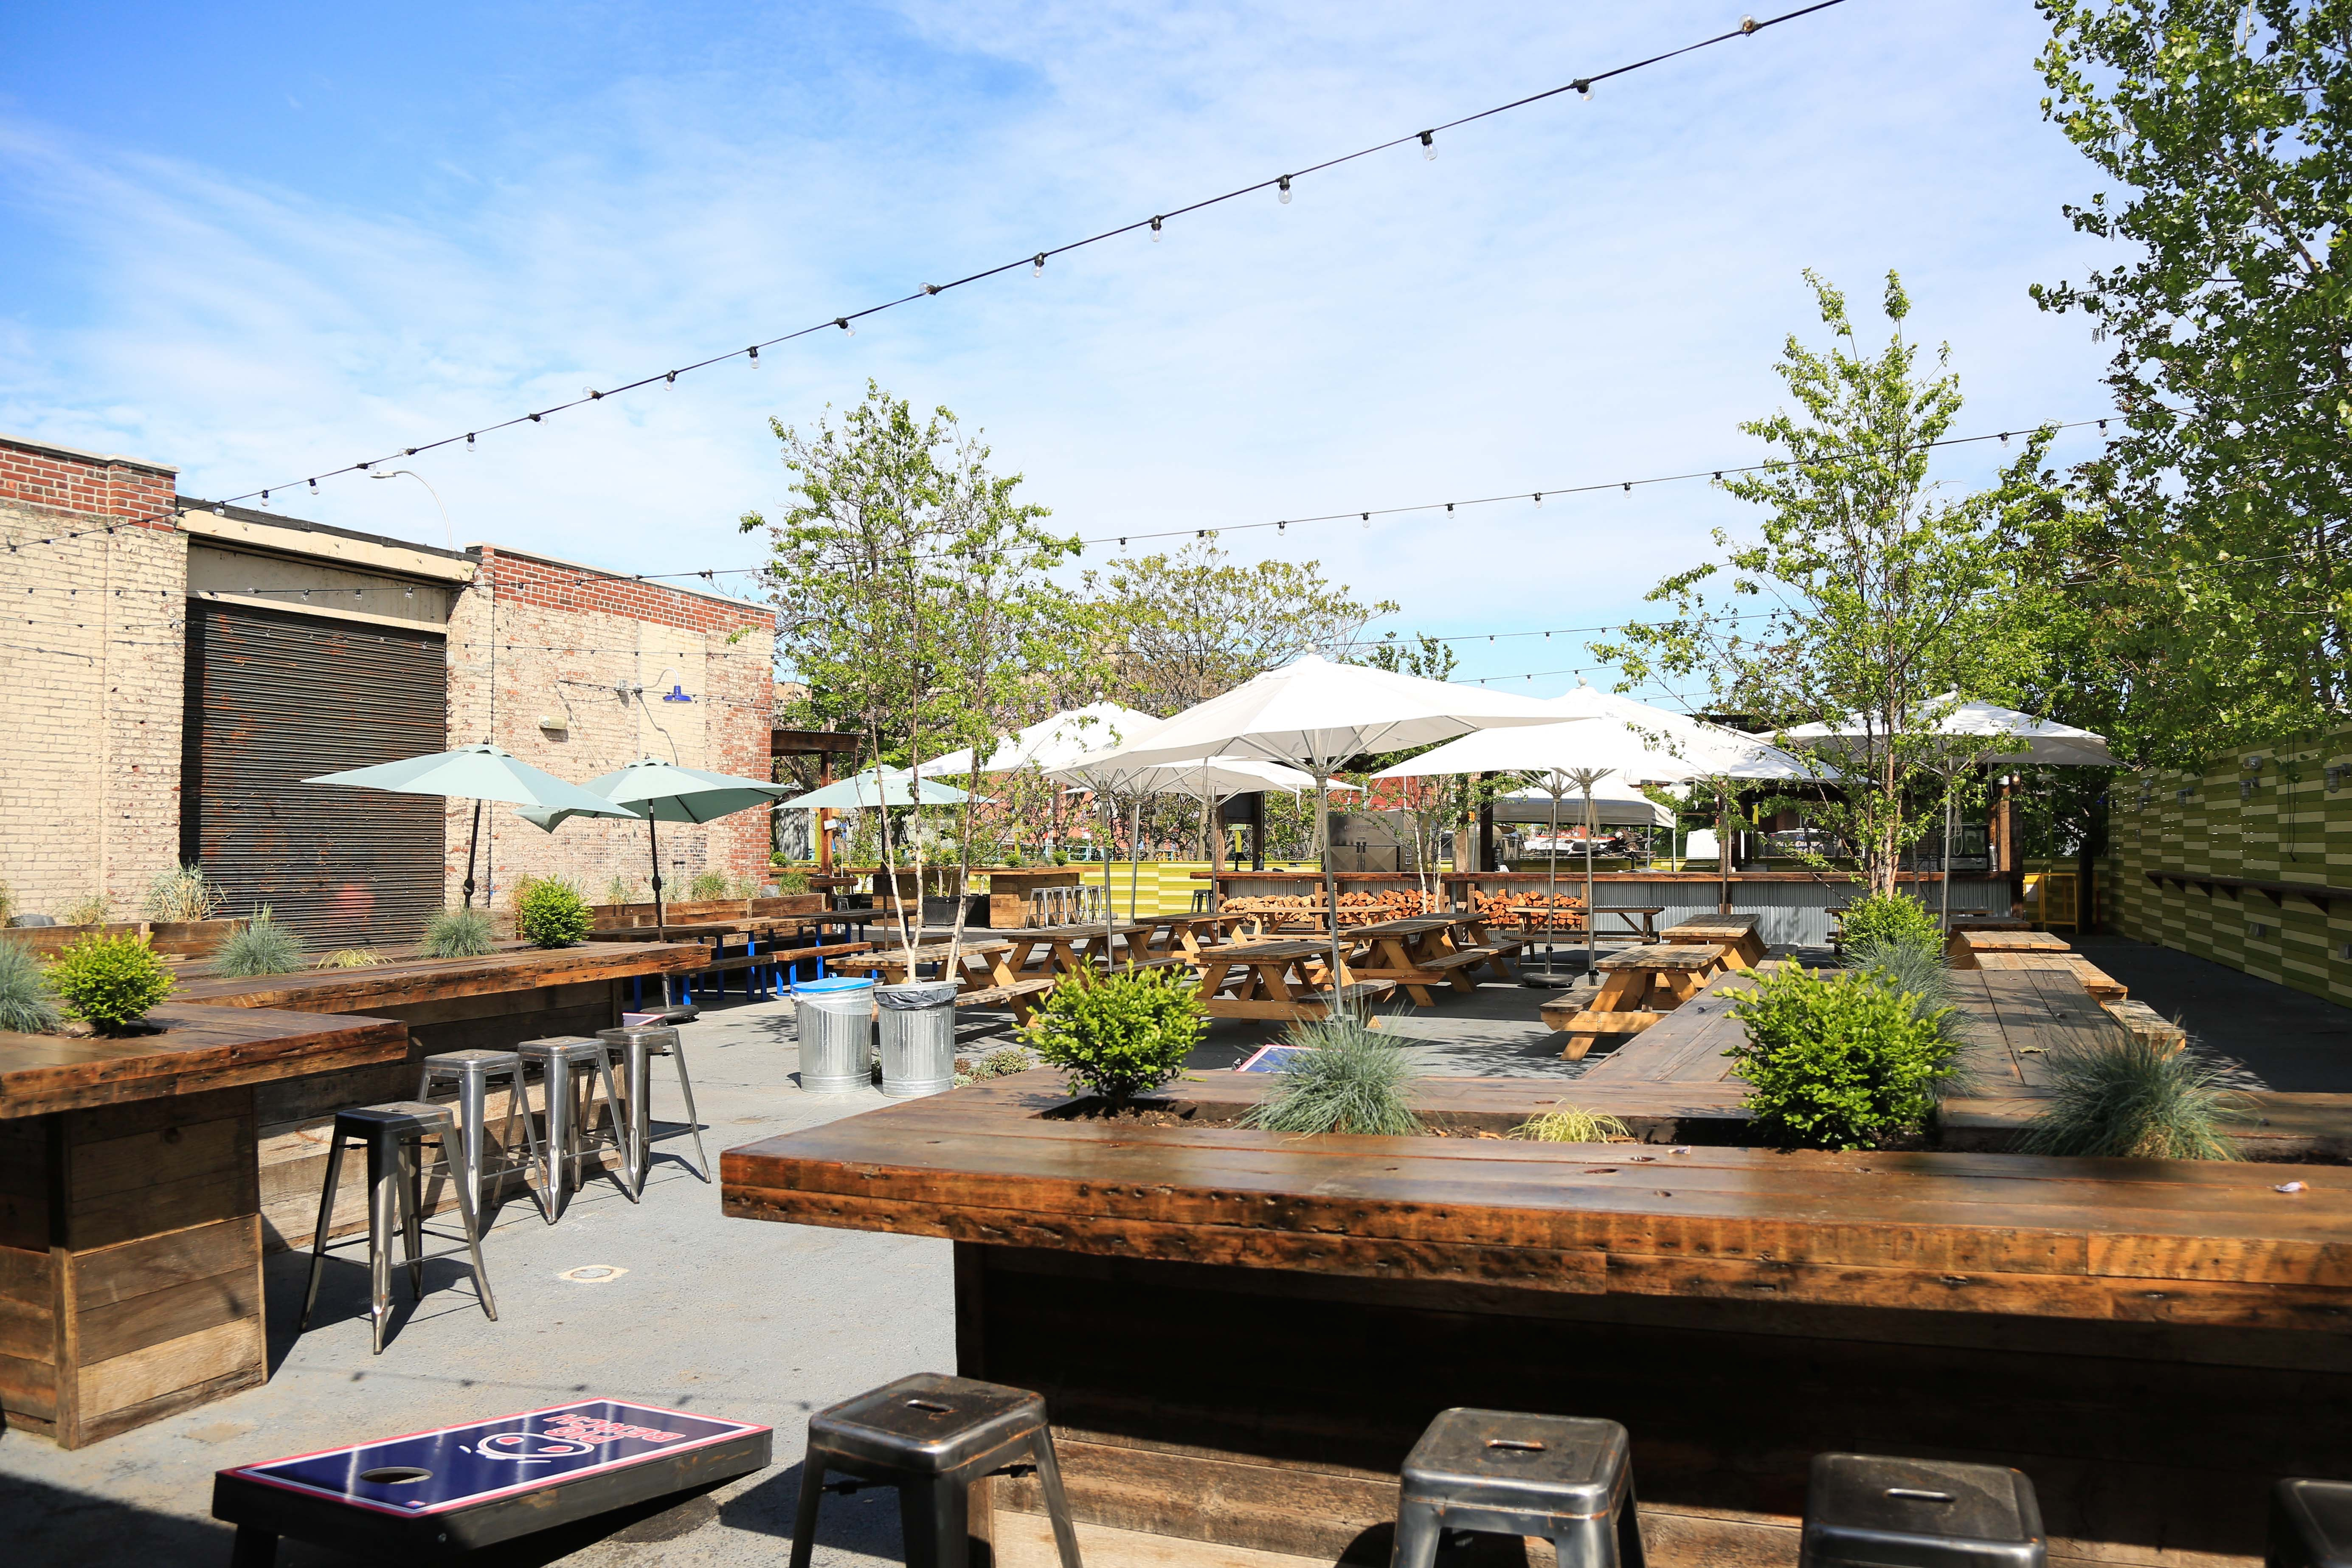 pig beach outdoor bbq plans year round service on gowanus canal